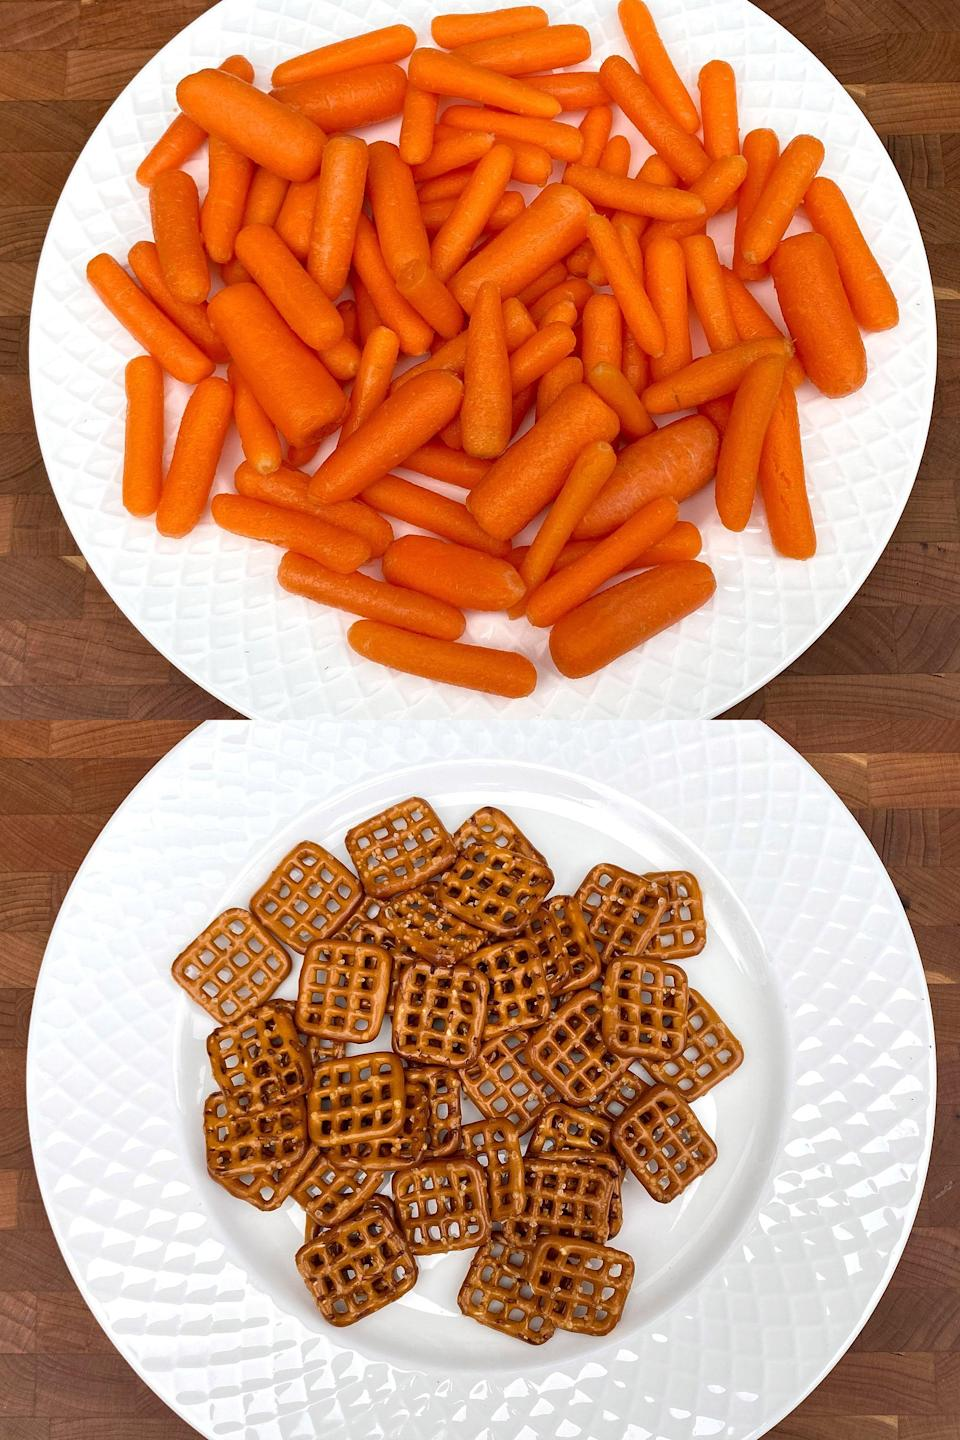 <p>Which do you think would fill you up more for a snack? This is 81 baby carrots for 200 calories versus only 40 pretzels. You'd probably be more likely to eat half those carrots anyway, which would be half the calories.</p>